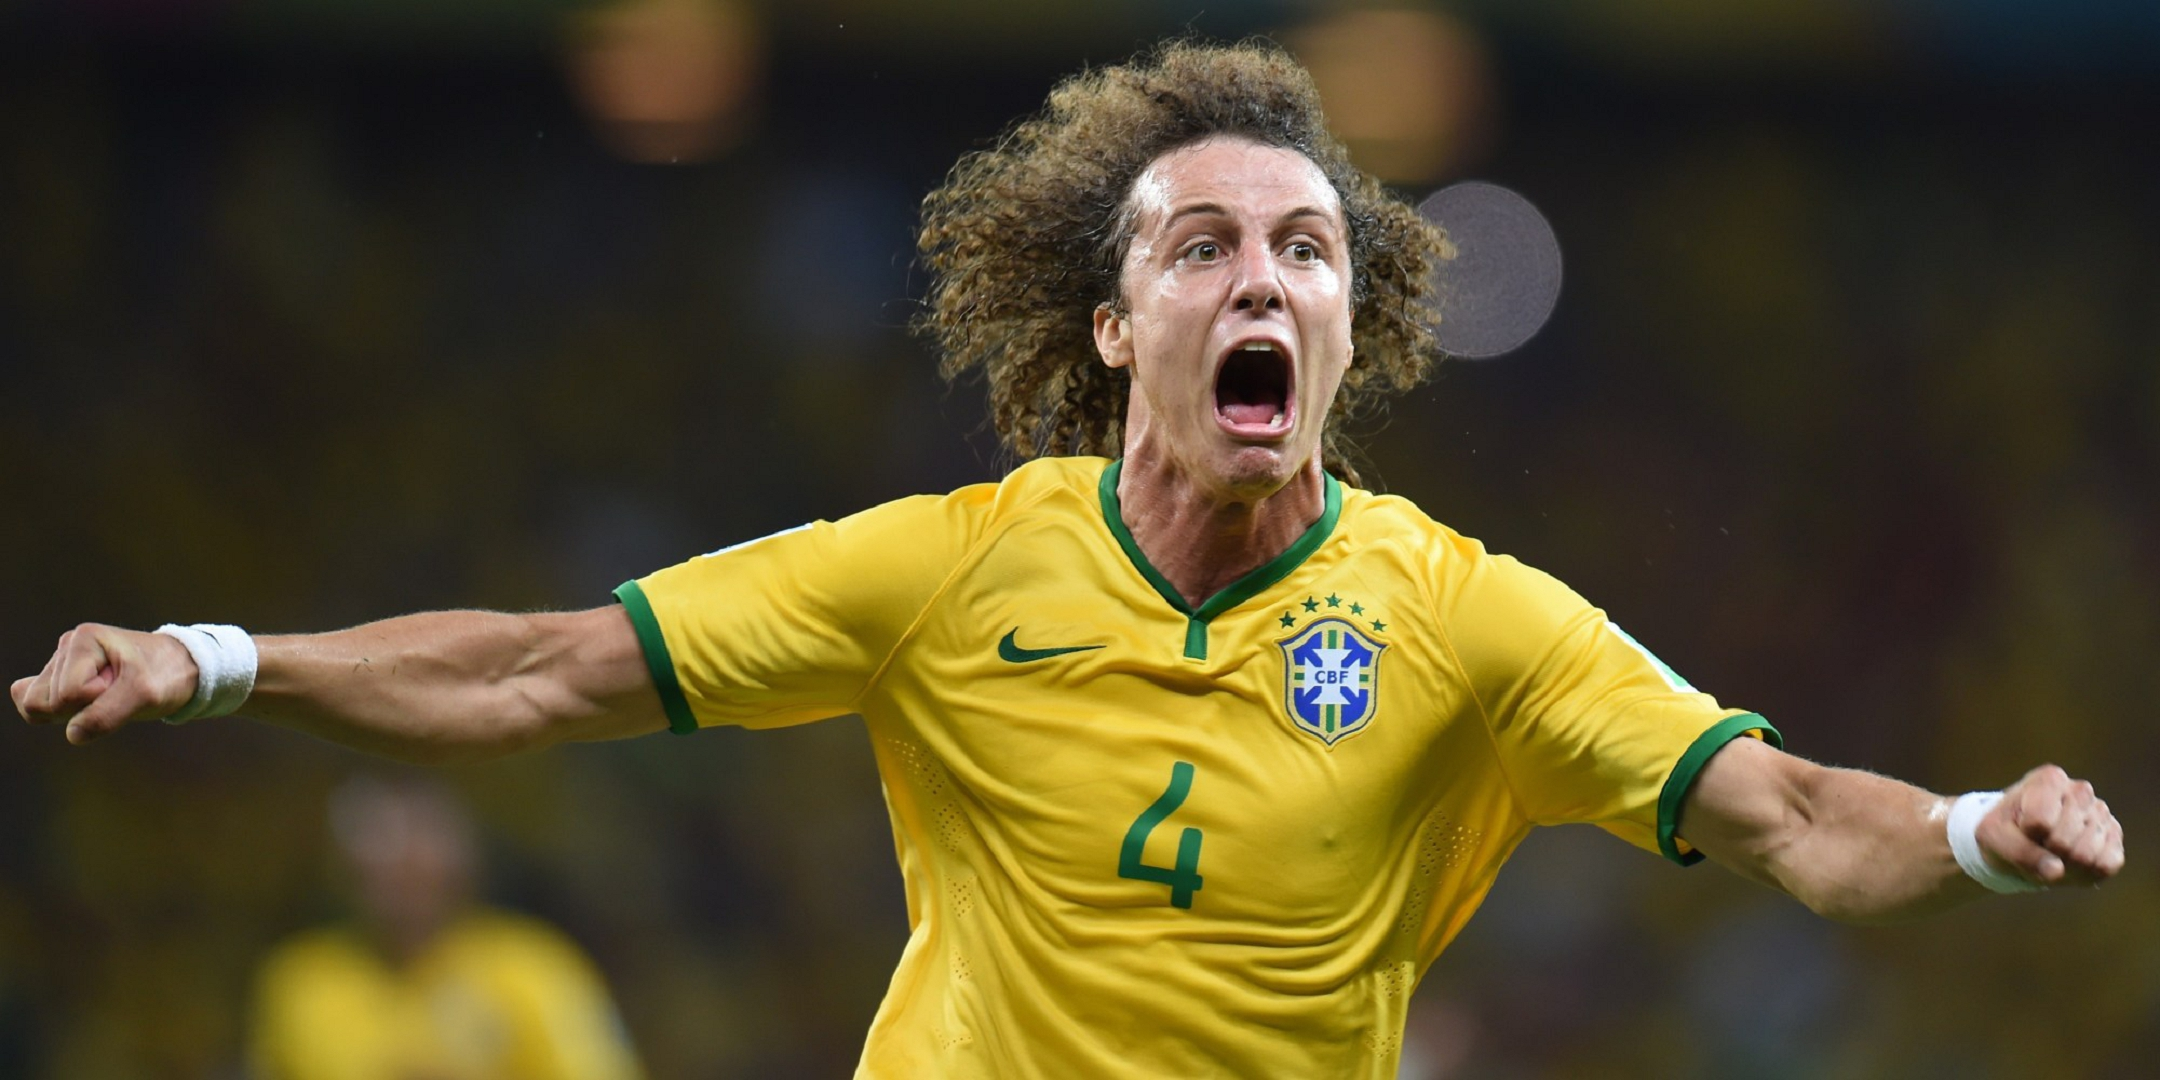 David Luiz Wallpapers Images Photos Pictures Backgrounds